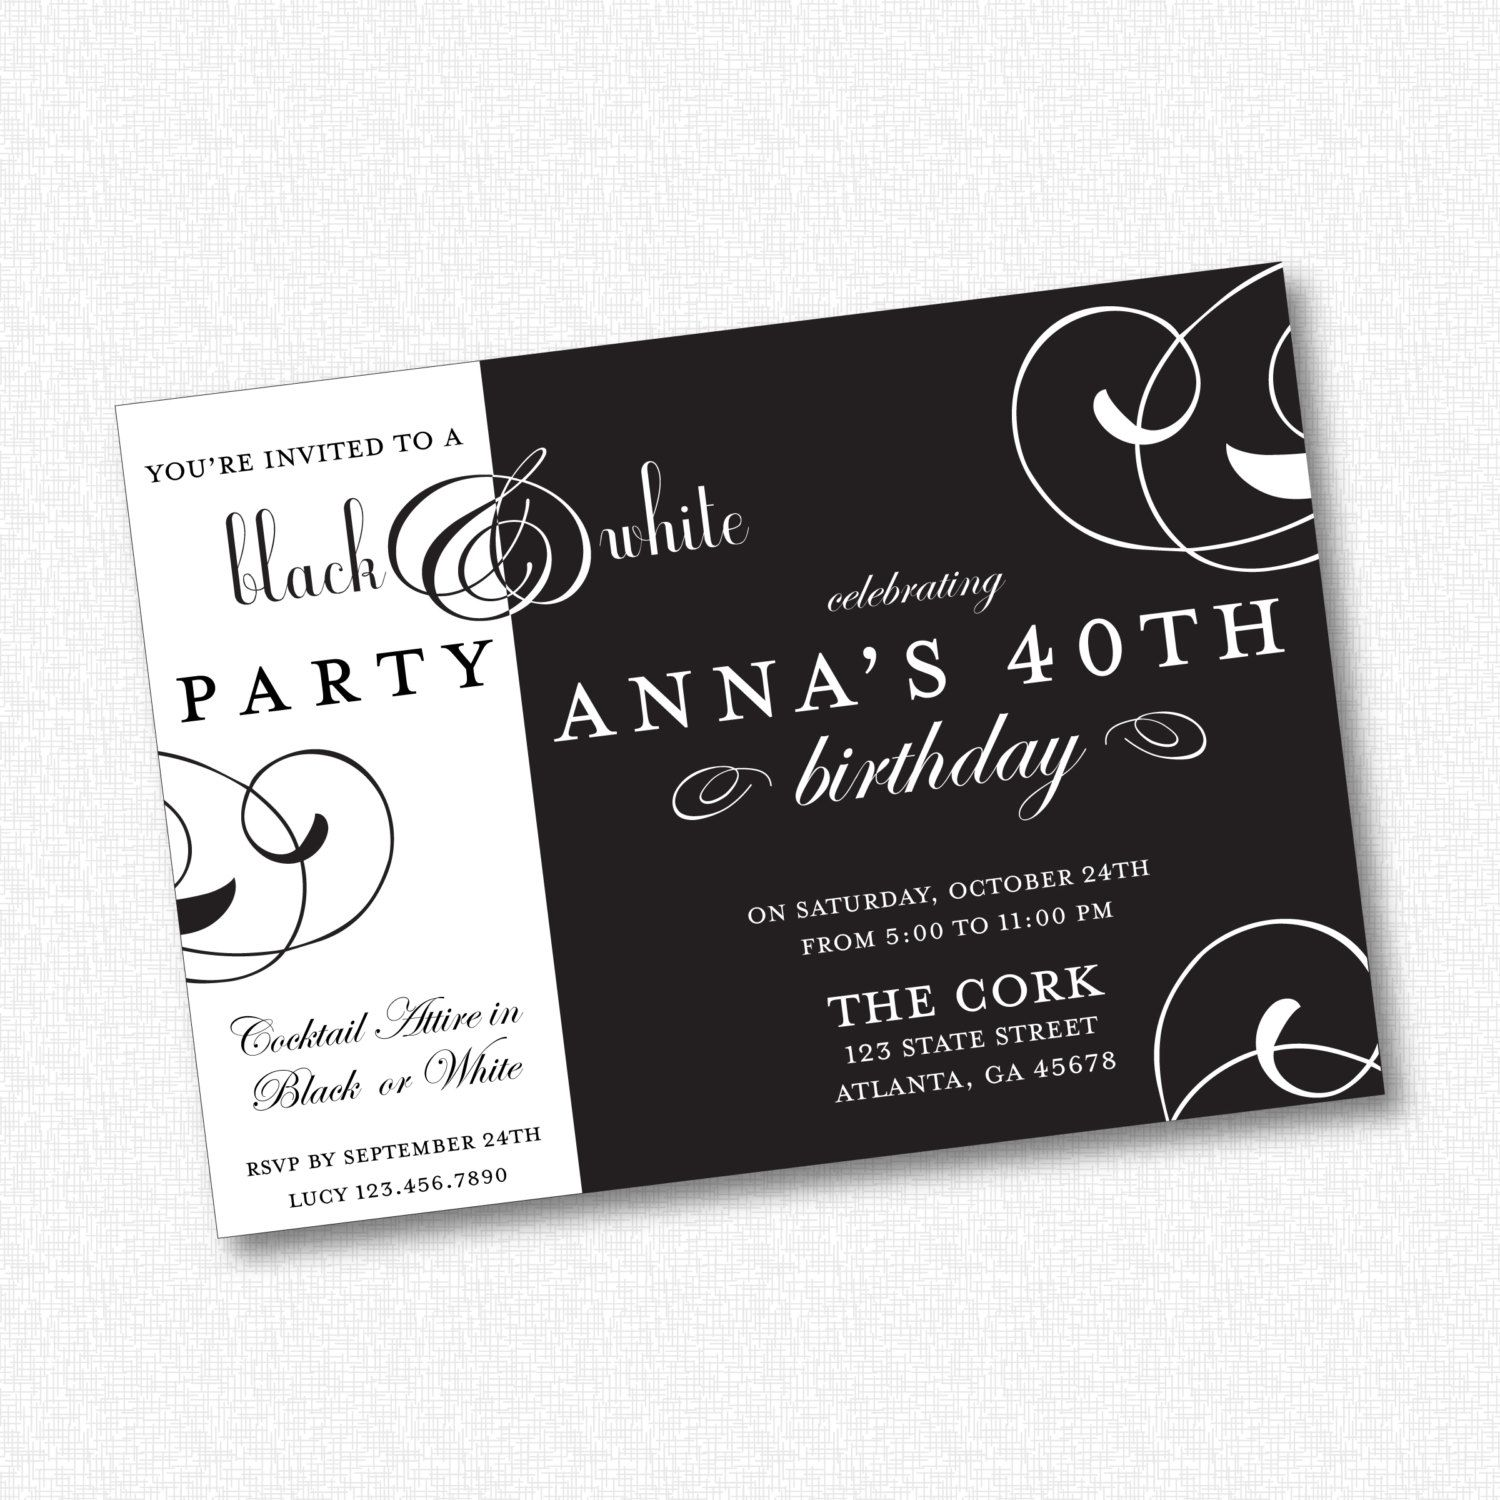 Black White Party Invitation Printable 21301 By Idconsultdesign